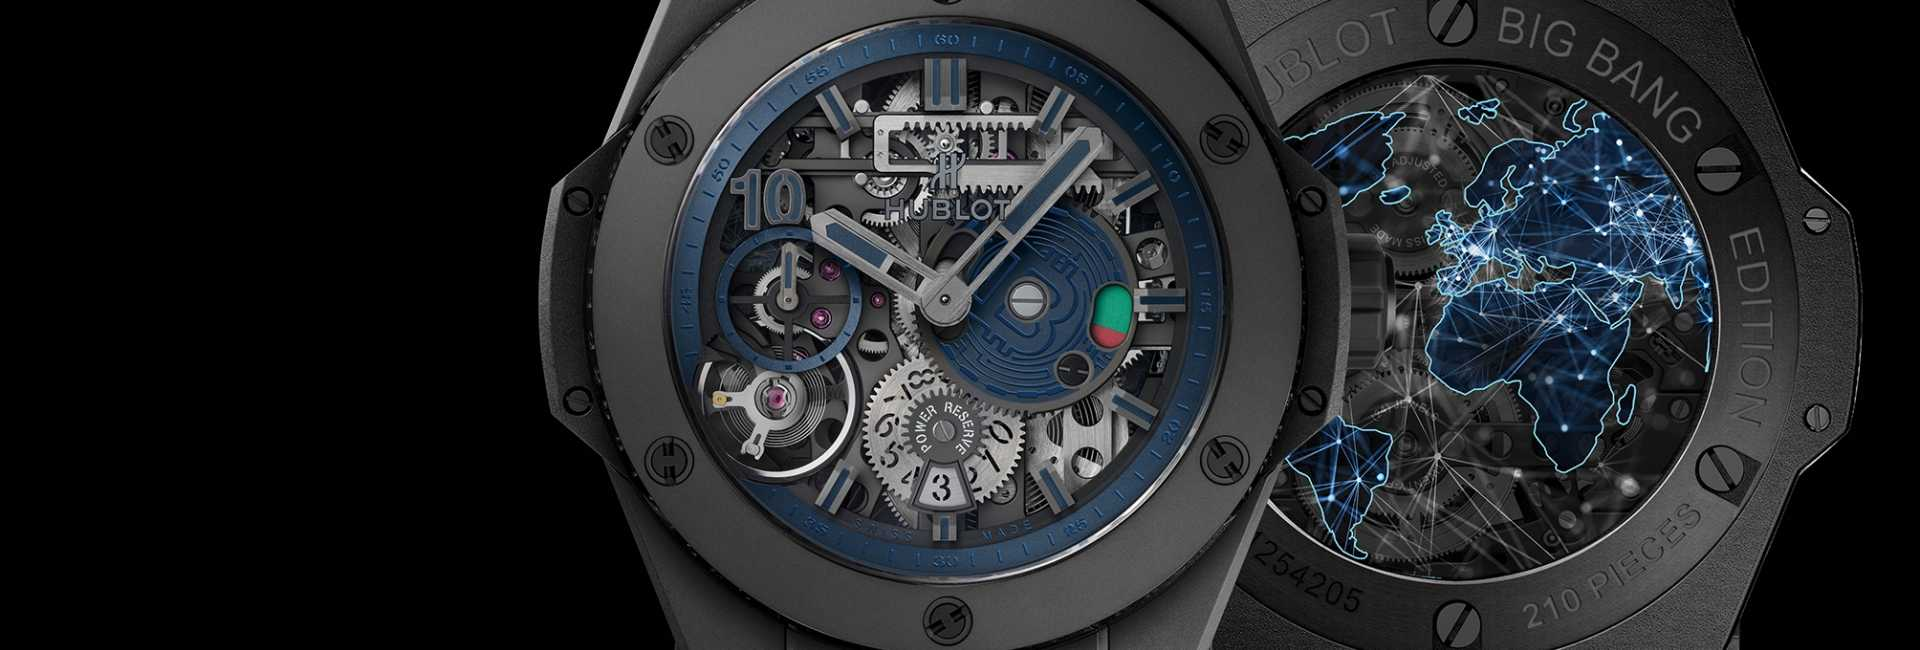 HUBLOT - Big Bang Meca -10 P2P